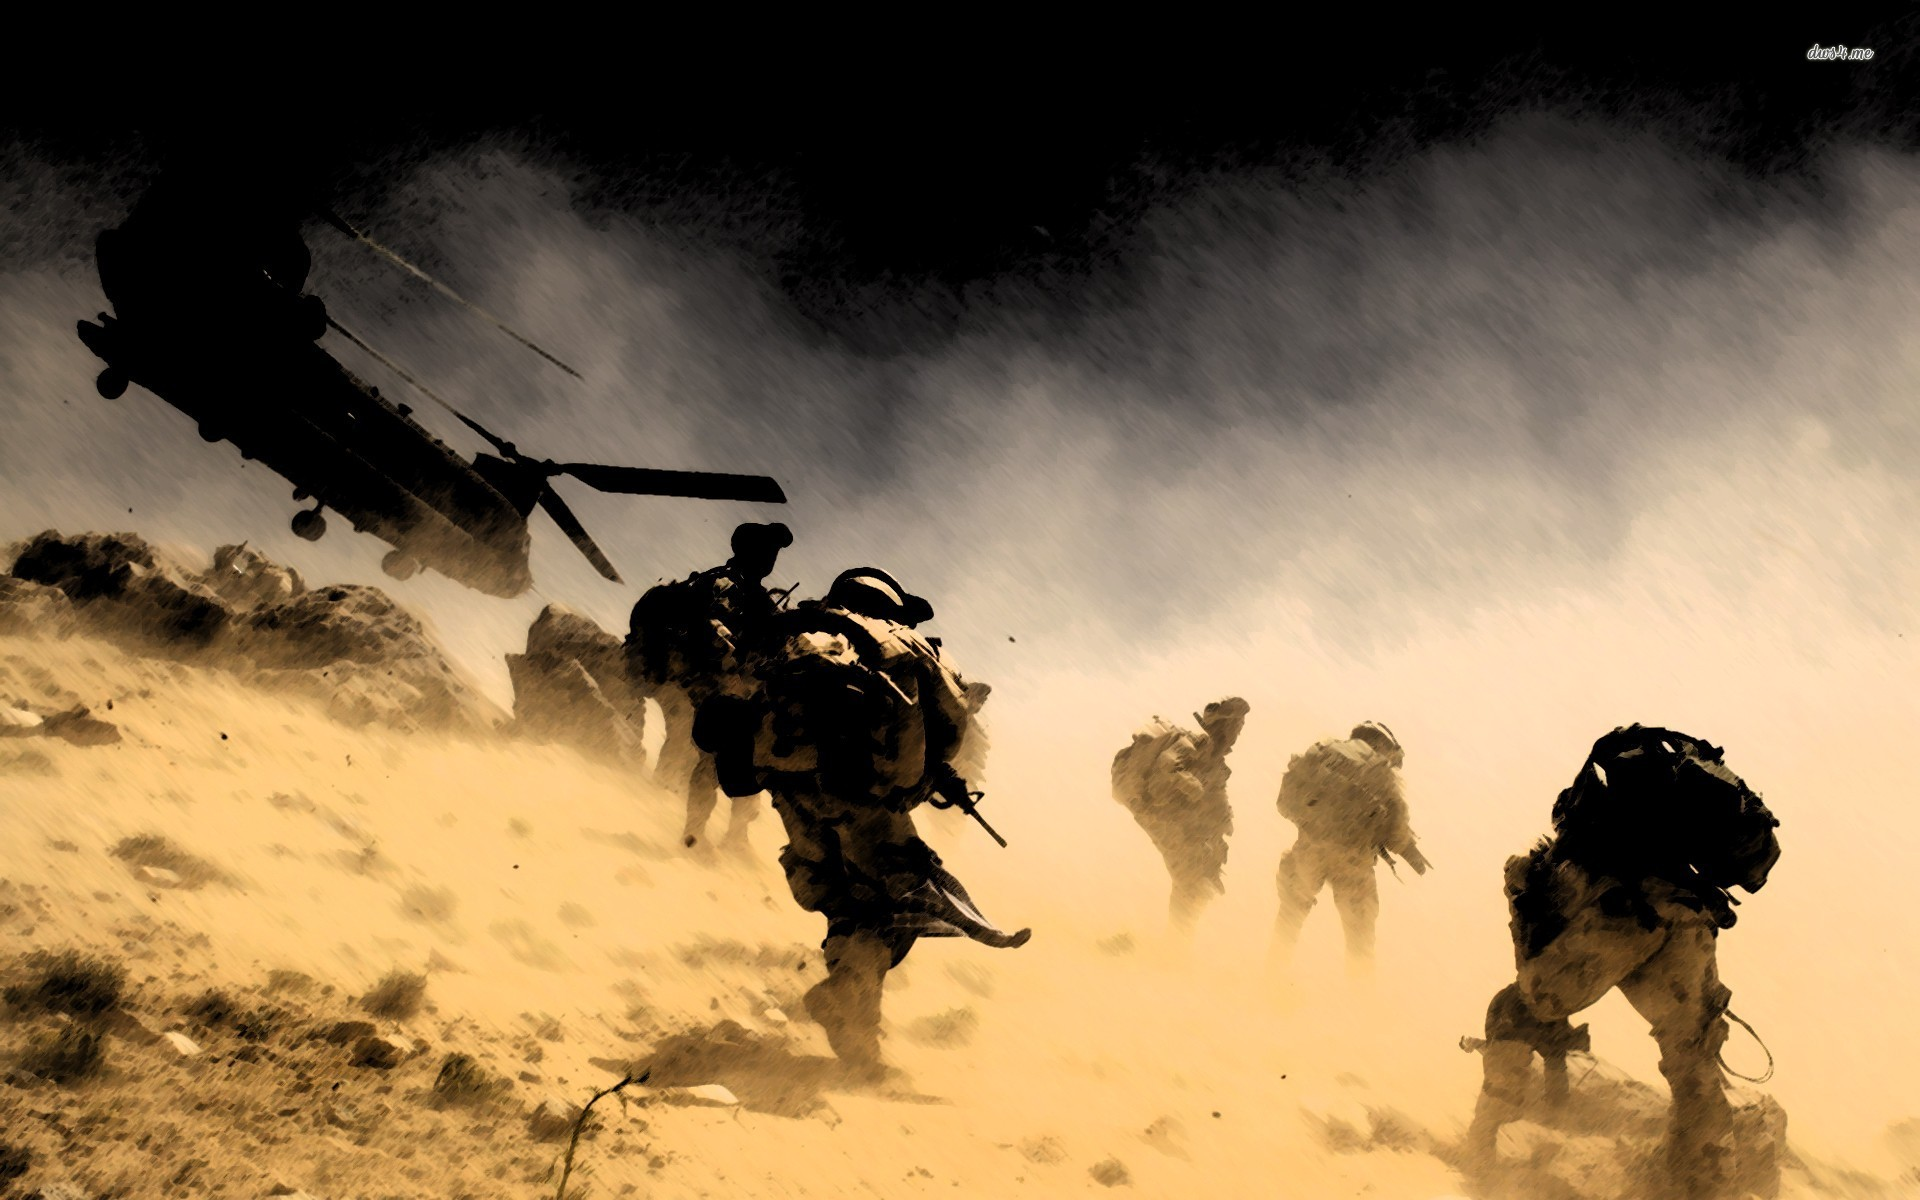 Soldiers in Fight Military Wallpapers 1920x1200